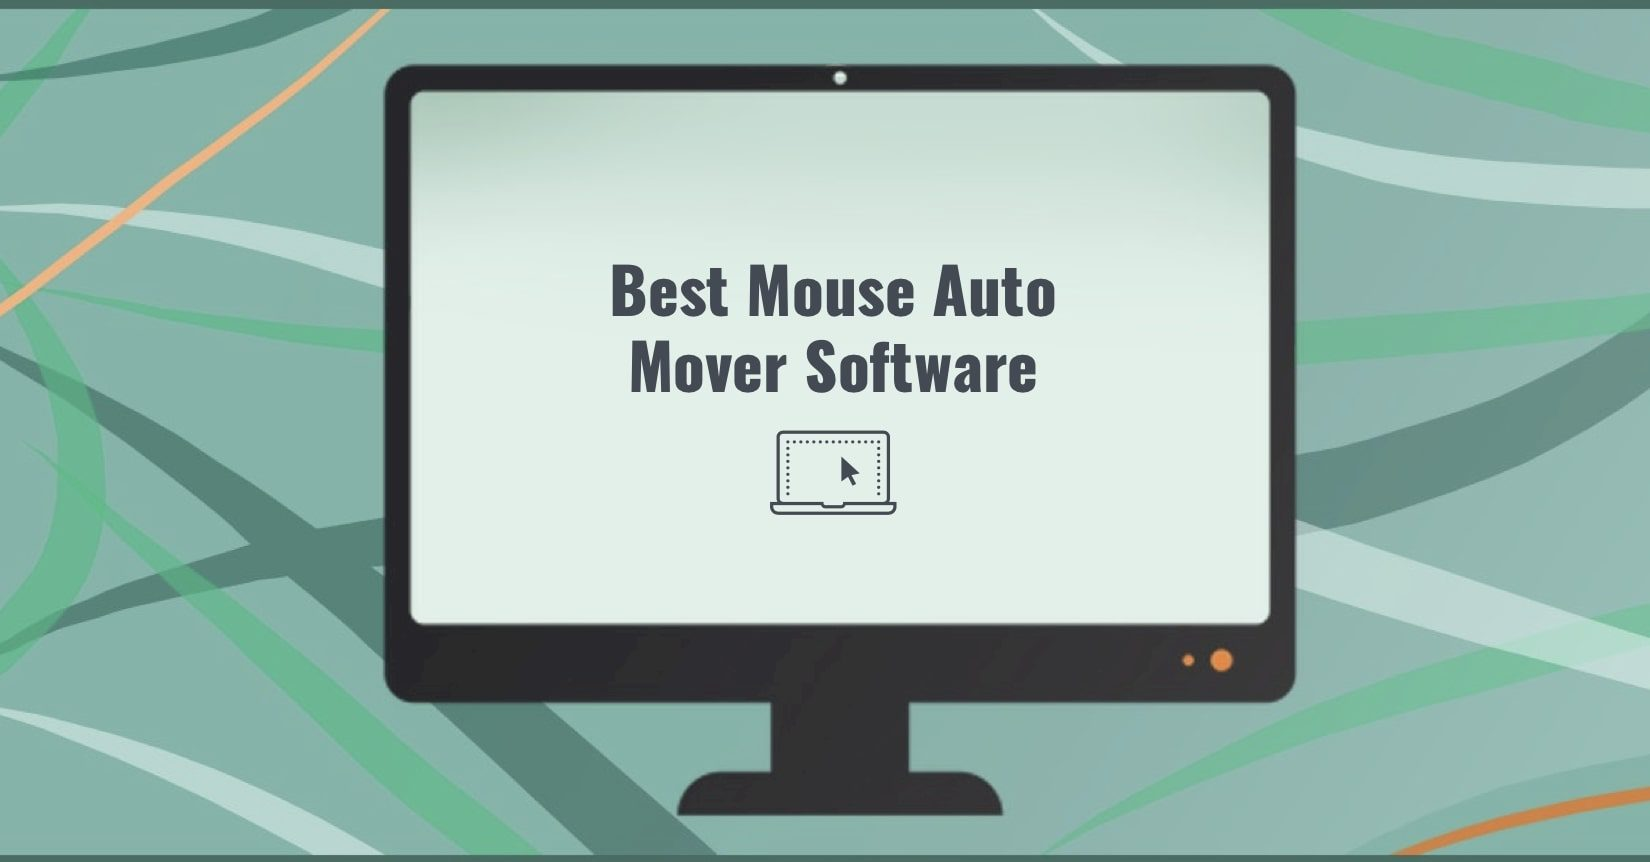 Best Mouse Auto Mover Software